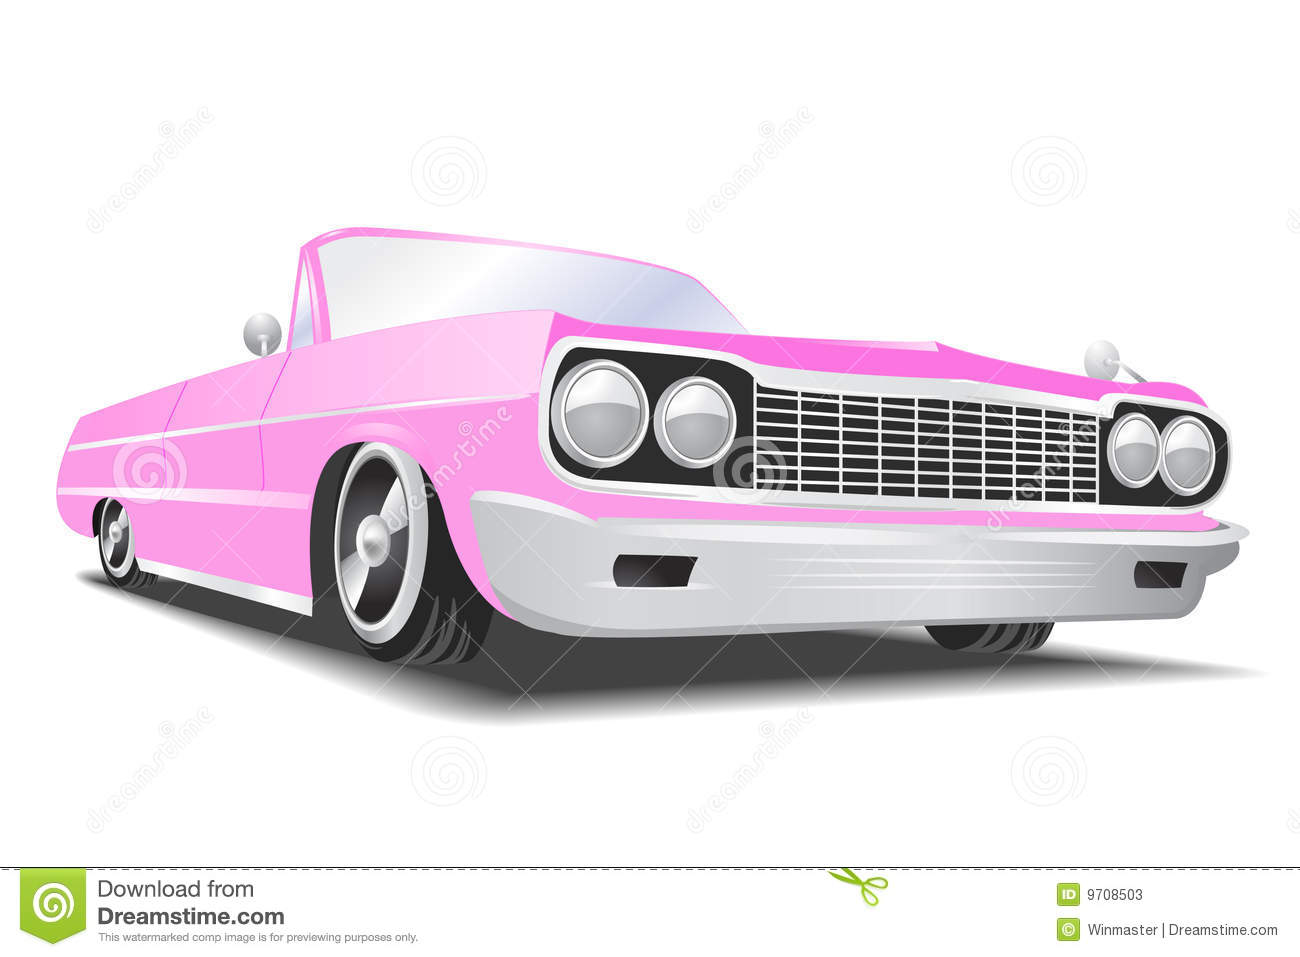 Pink vector cadillac. Vector Illustration. Classic american car made in  pink Stock Photos